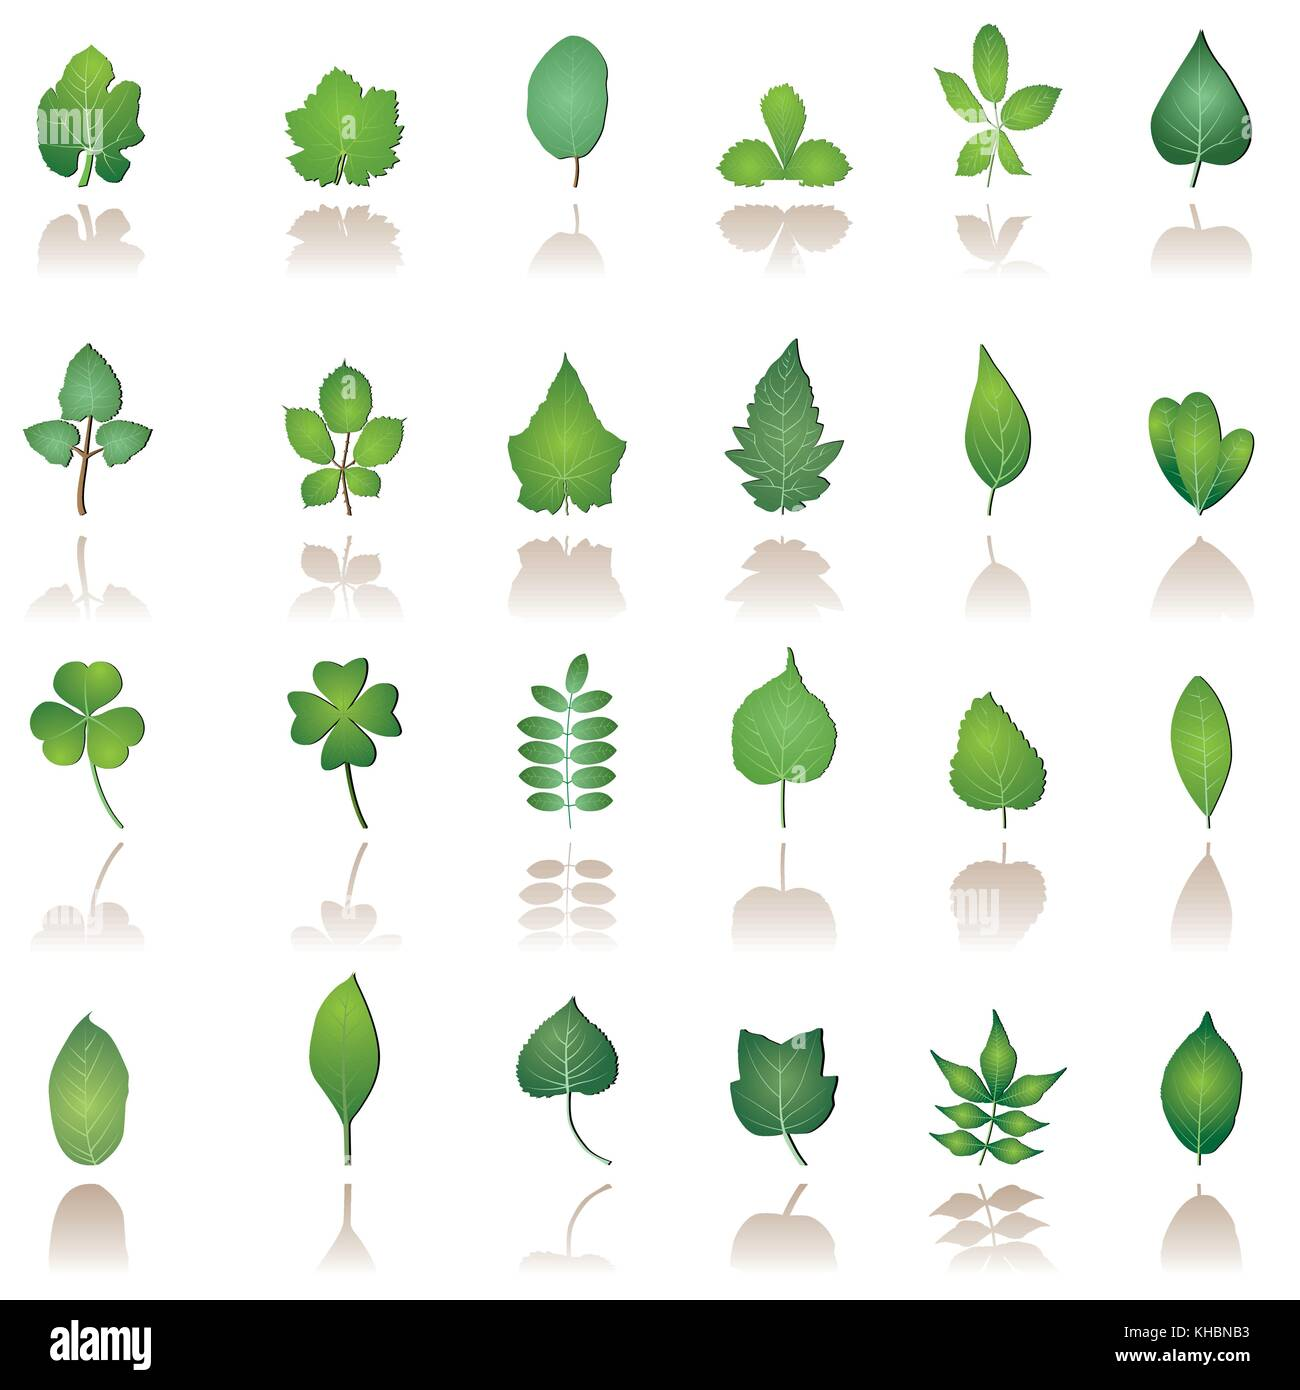 tree leafs and nature icons - vector icon set - Stock Vector